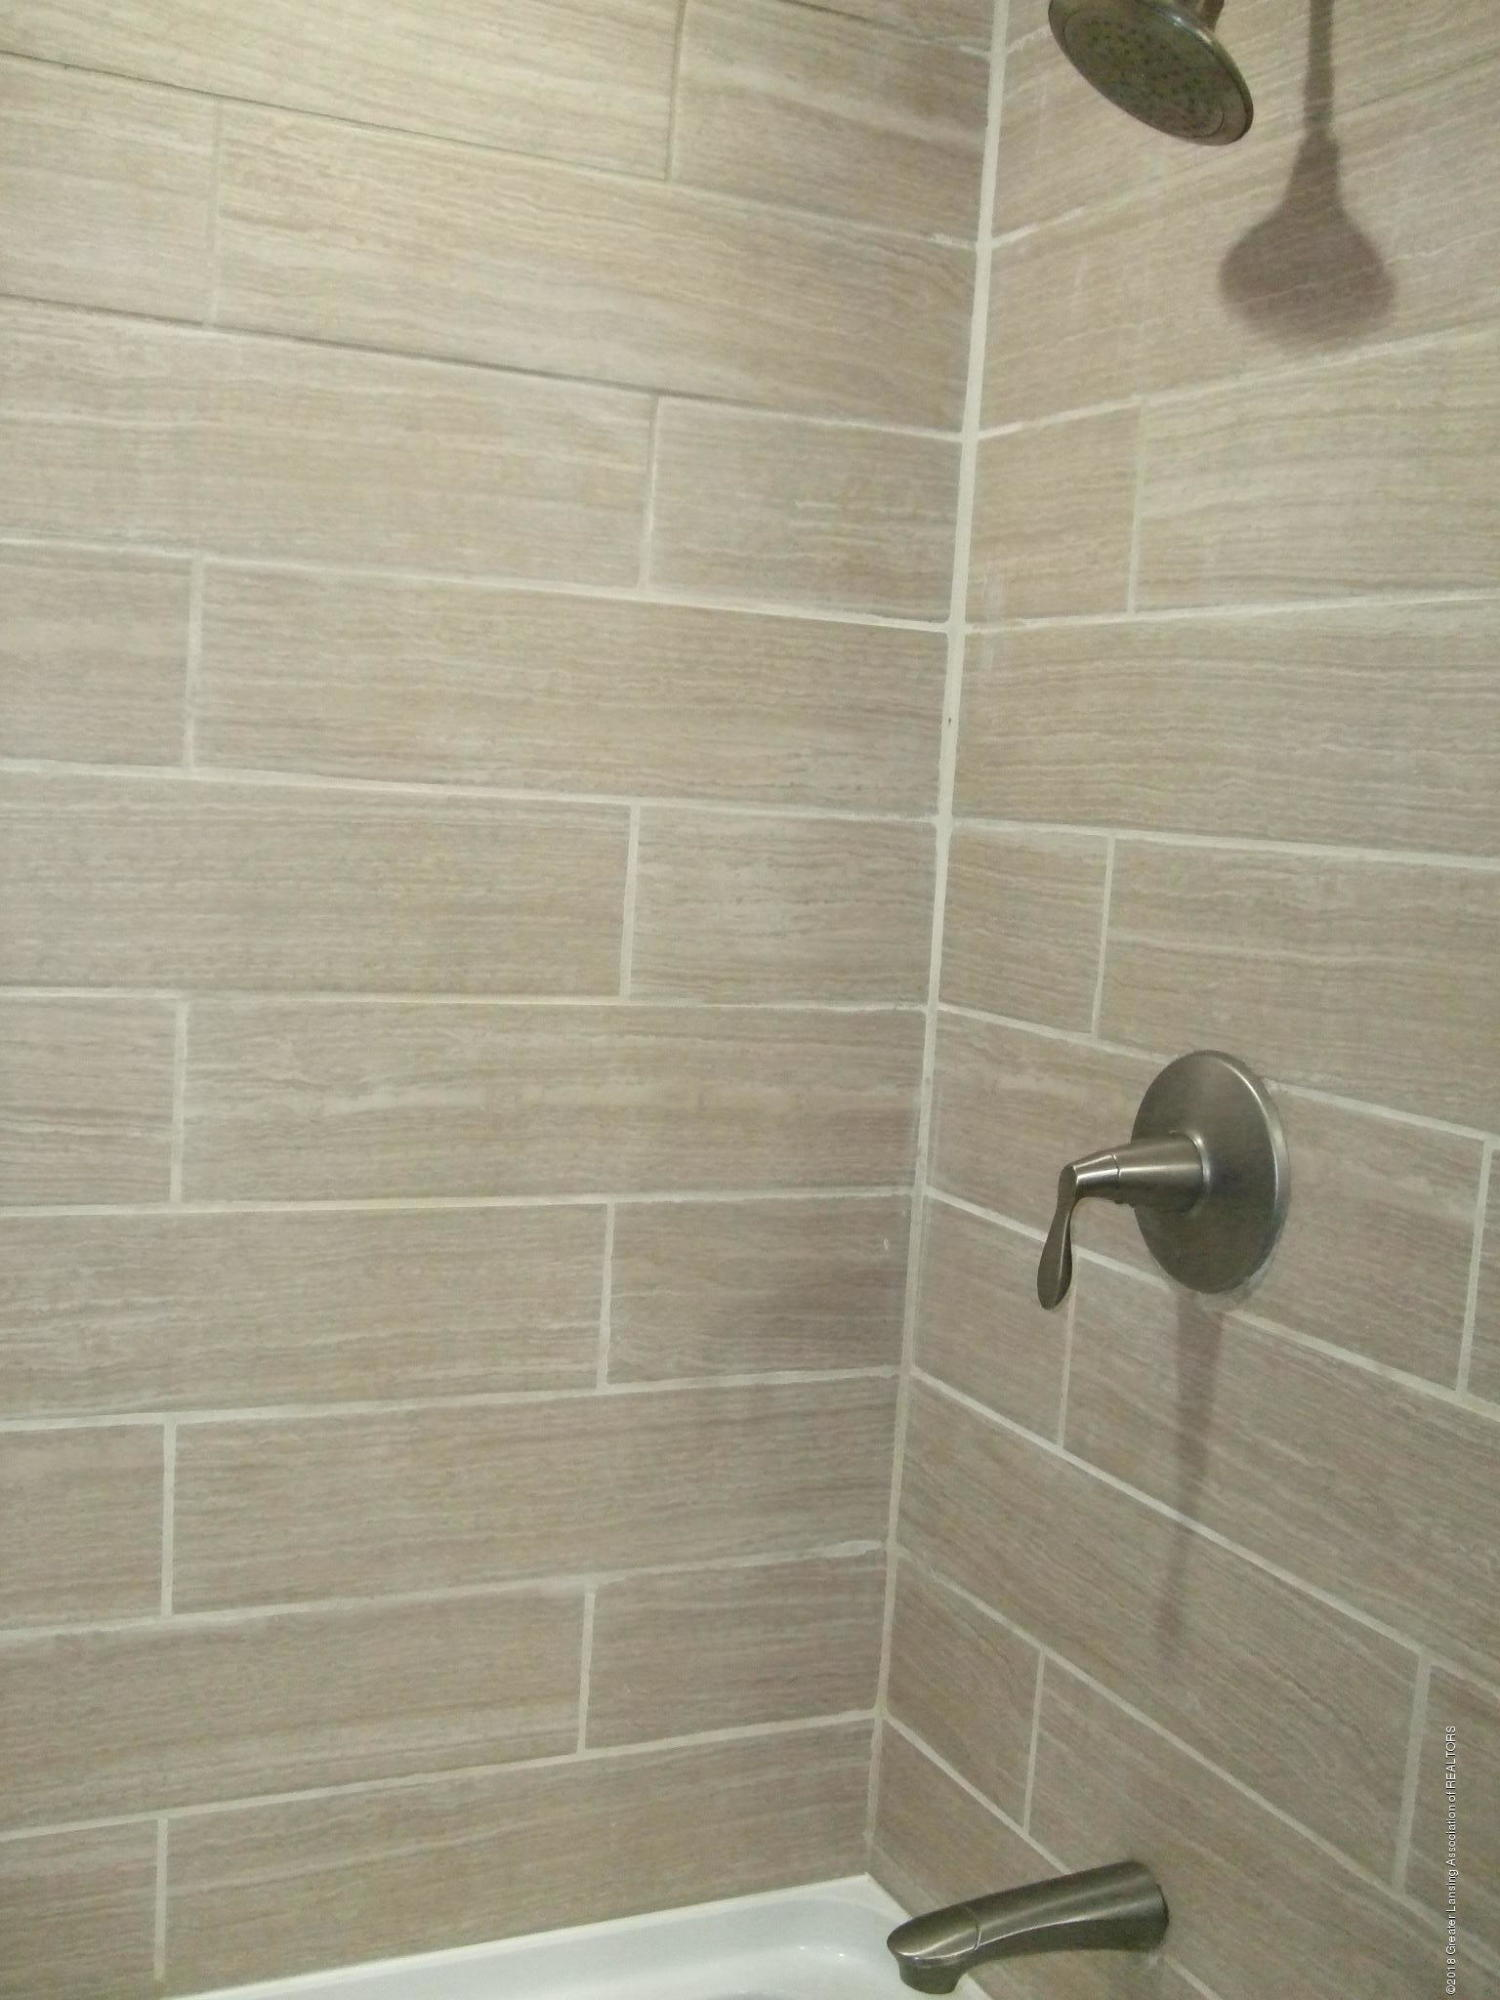 4357 Davlind Dr - FB-tile shower - 17